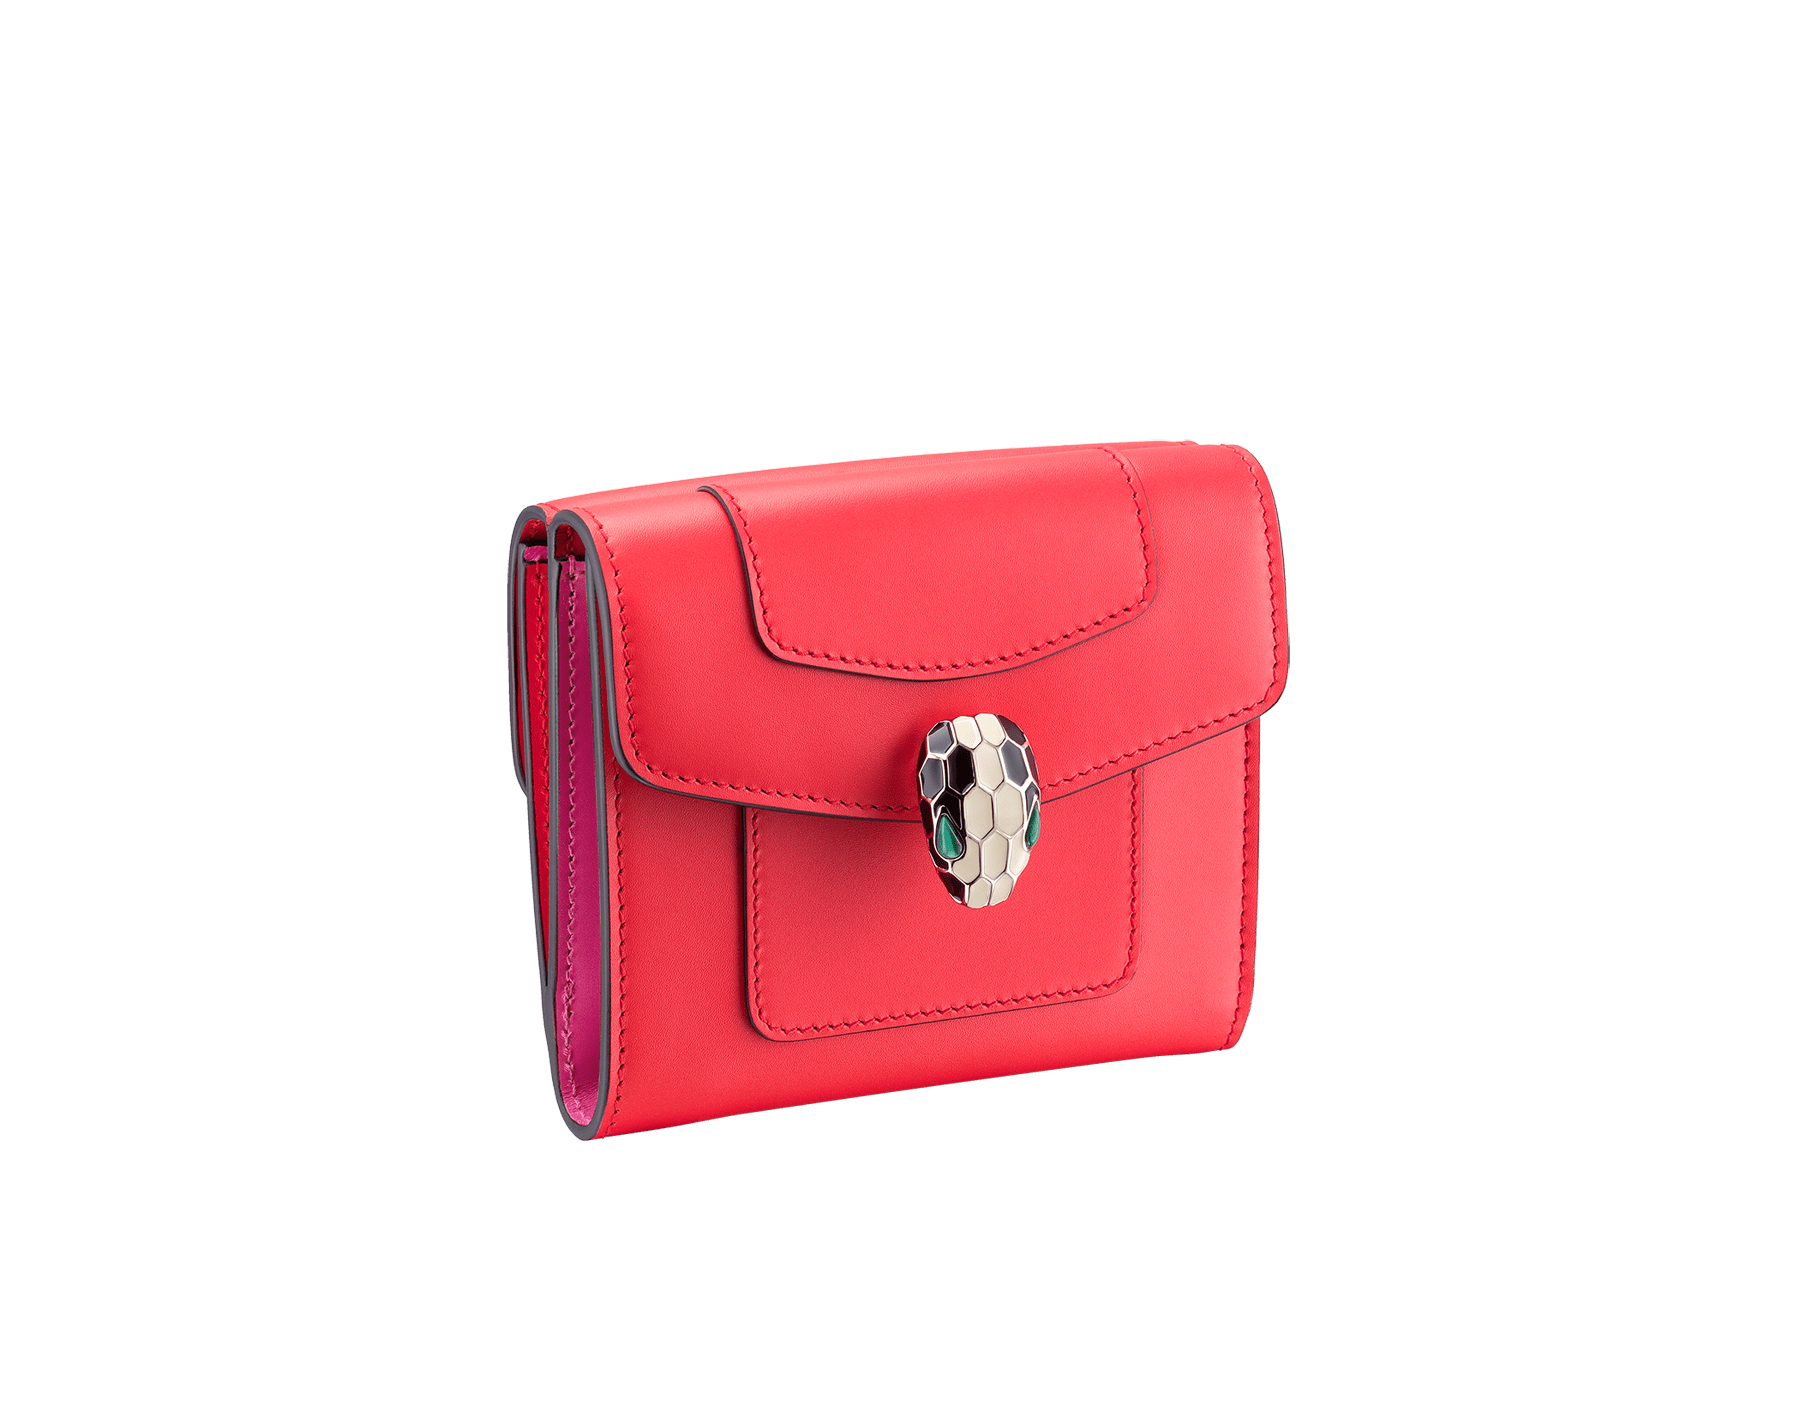 Serpenti Forever square compact wallet in sea star coral and pink spinel calf leather. Iconic snakehead charm in black and white enamel with green malachite eyes. 288006 image 1